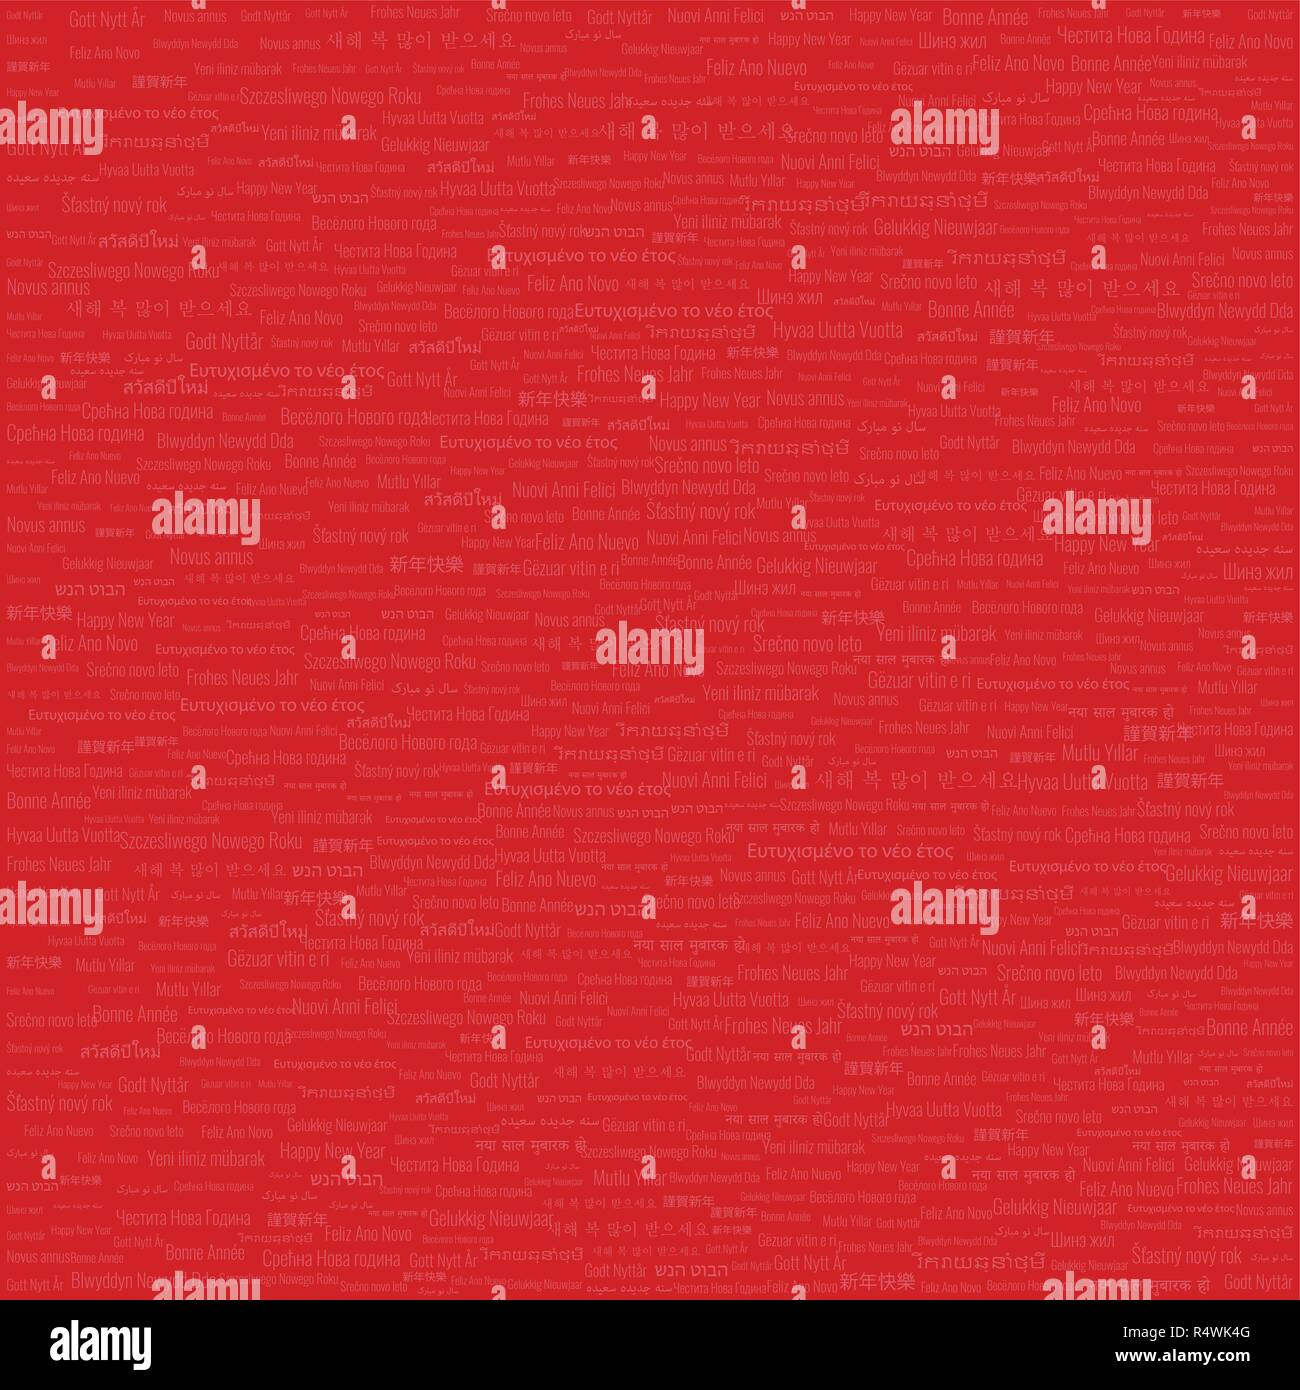 Christmas & New Year Themed Background High Density Tile Contains 'Happy New Year' Text in Many Different Languages on Red Background - Stock Image